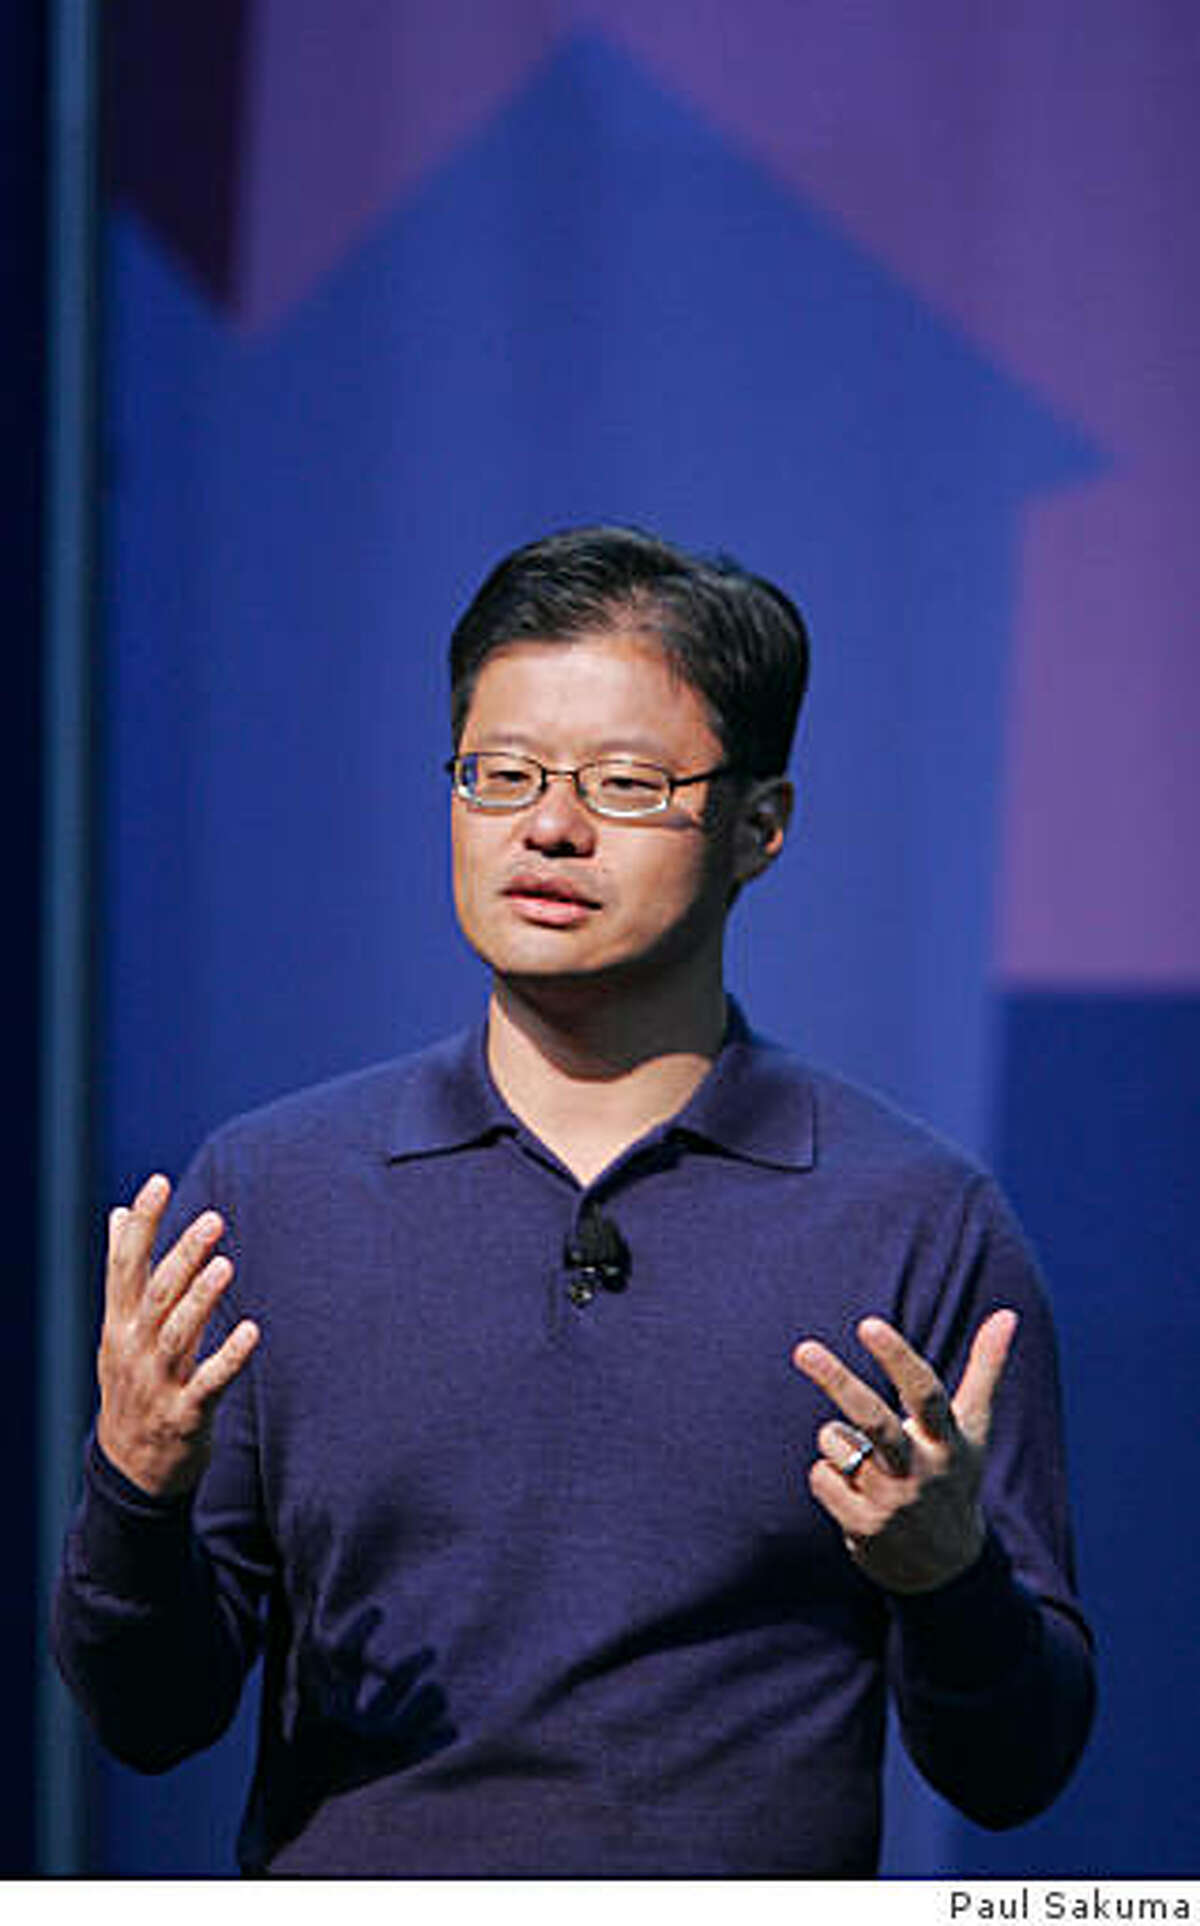 ** FILE ** Yahoo CEO Jerry Yang gives a keynote address at the Consumer Electronics Show (CES) in Las Vegas, in this Jan. 7, 2008 file photo. Yahoo Inc. Chief Executive Jerry Yang told employees Wednesday Feb. 6, 2008, that the struggling Internet pioneer is still examining ways to avoid a takeover by rival Microsoft Corp. (AP Photo/Paul Sakuma, file)